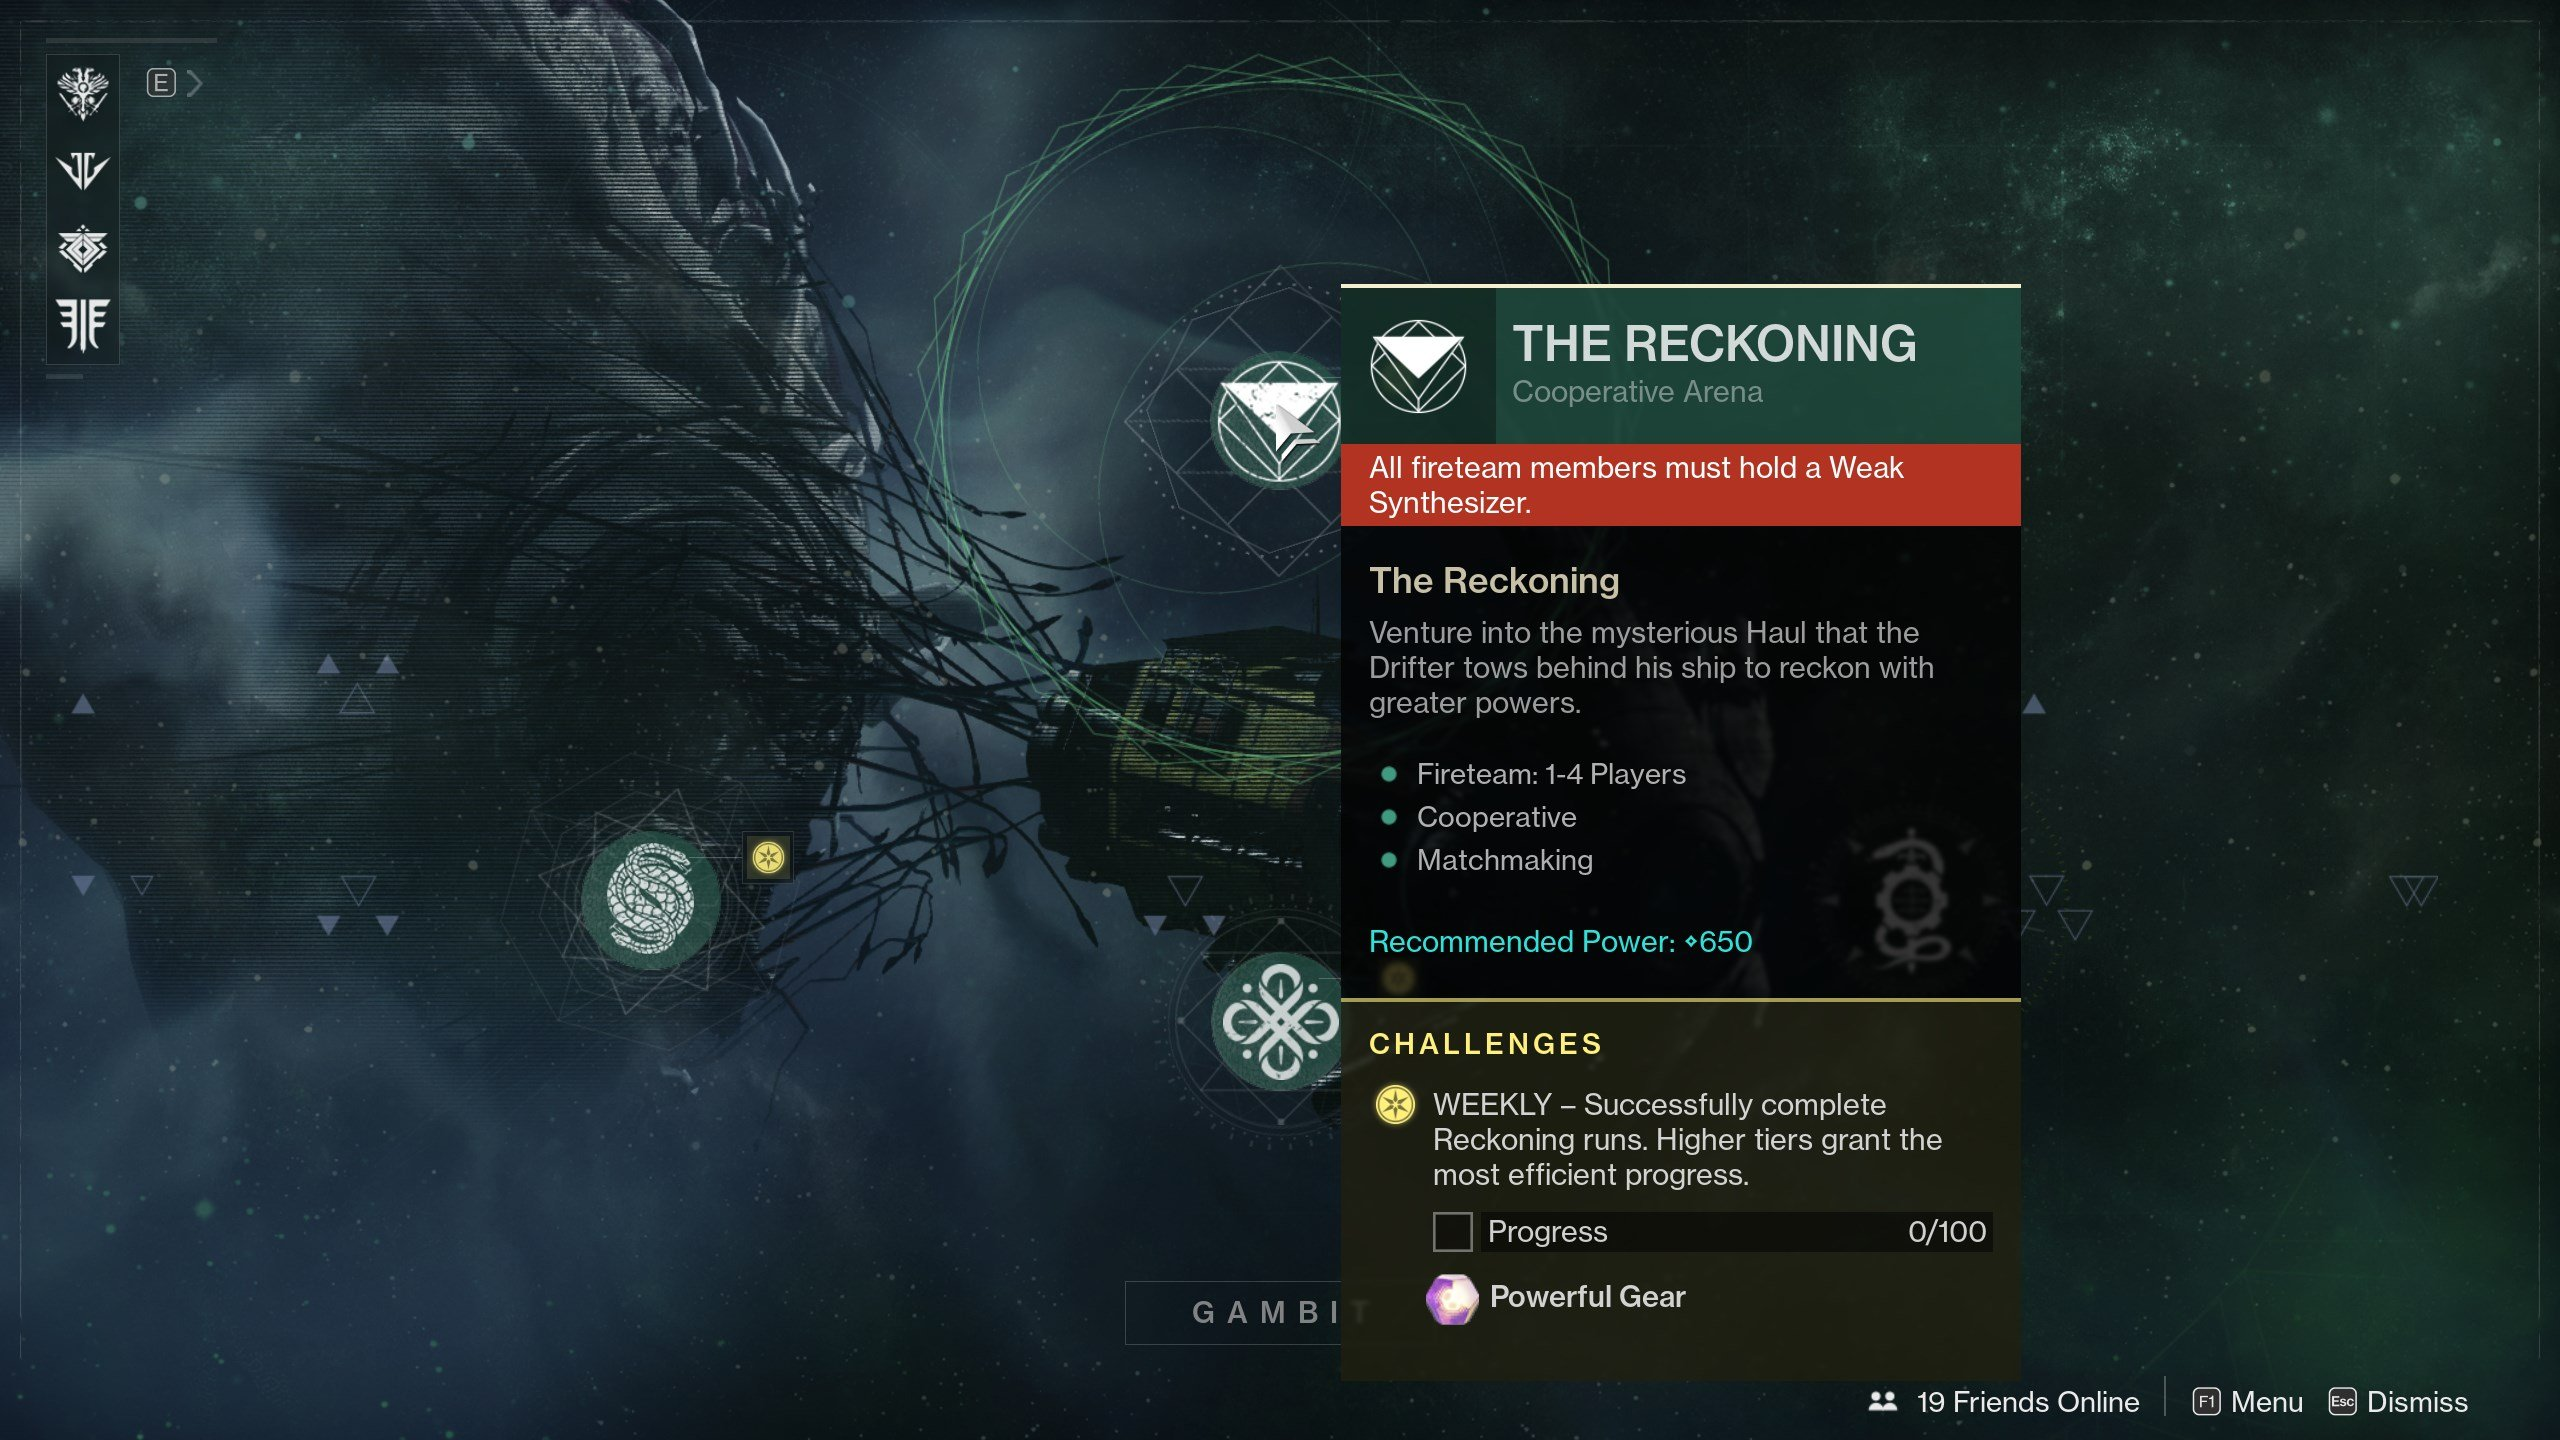 Destiny 2 The Reckoning requires Weak Synthesizer